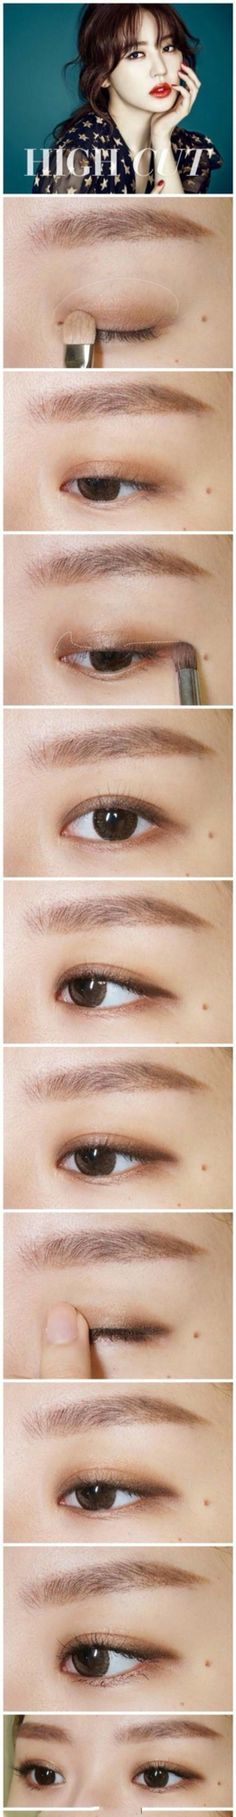 Korean style make up